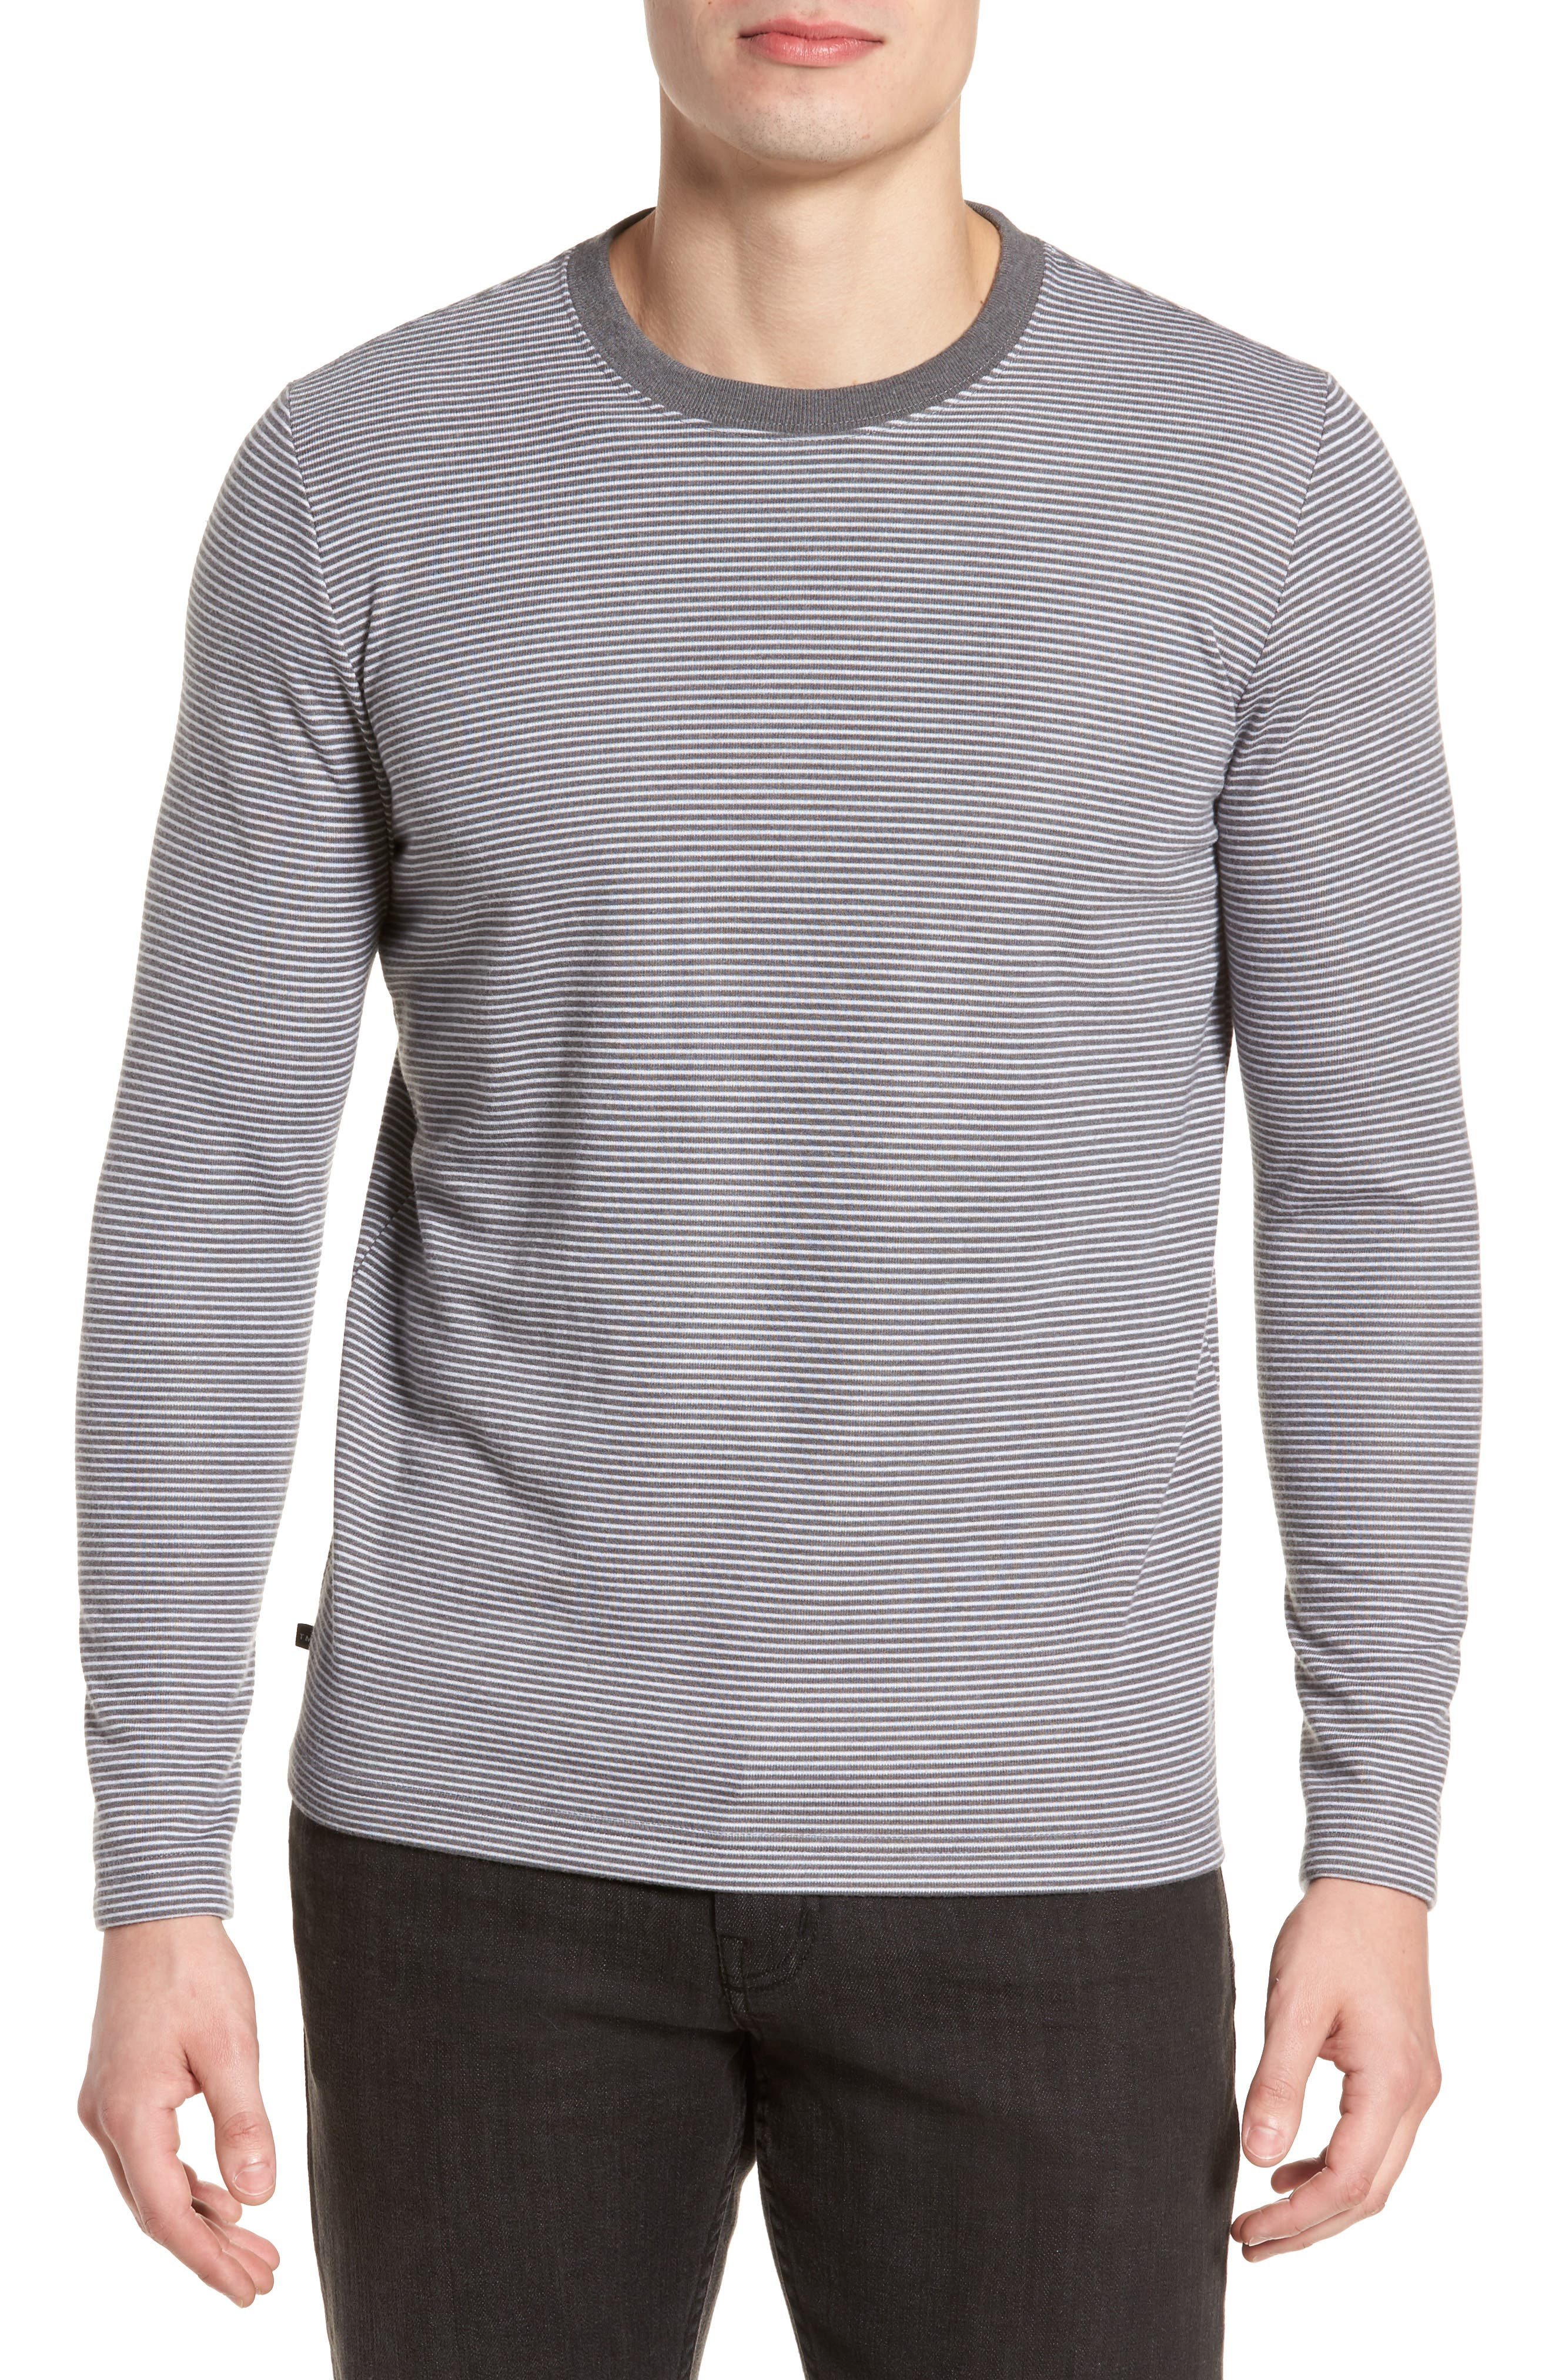 Outpost Stripe Pullover,                         Main,                         color, Quiet Shade